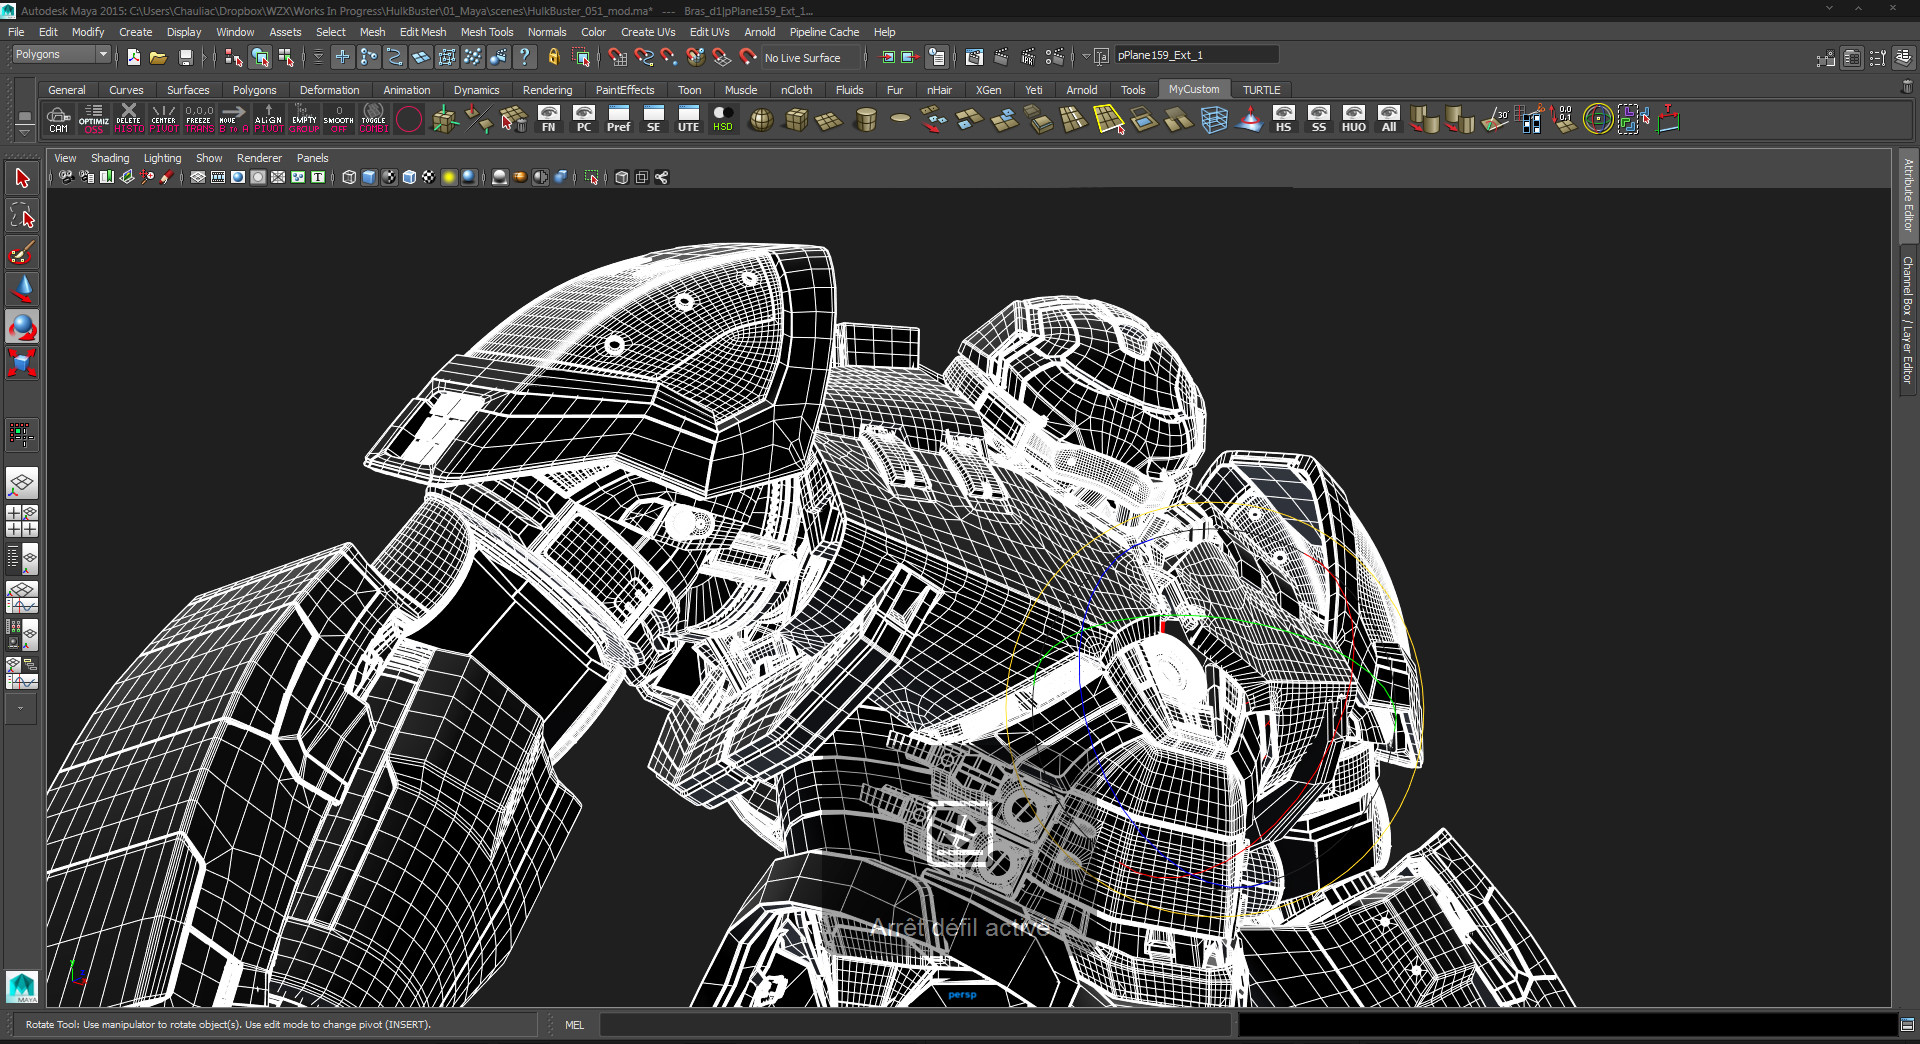 ArtStation - Making the Hulk Buster - Tutorial, - Wizix -